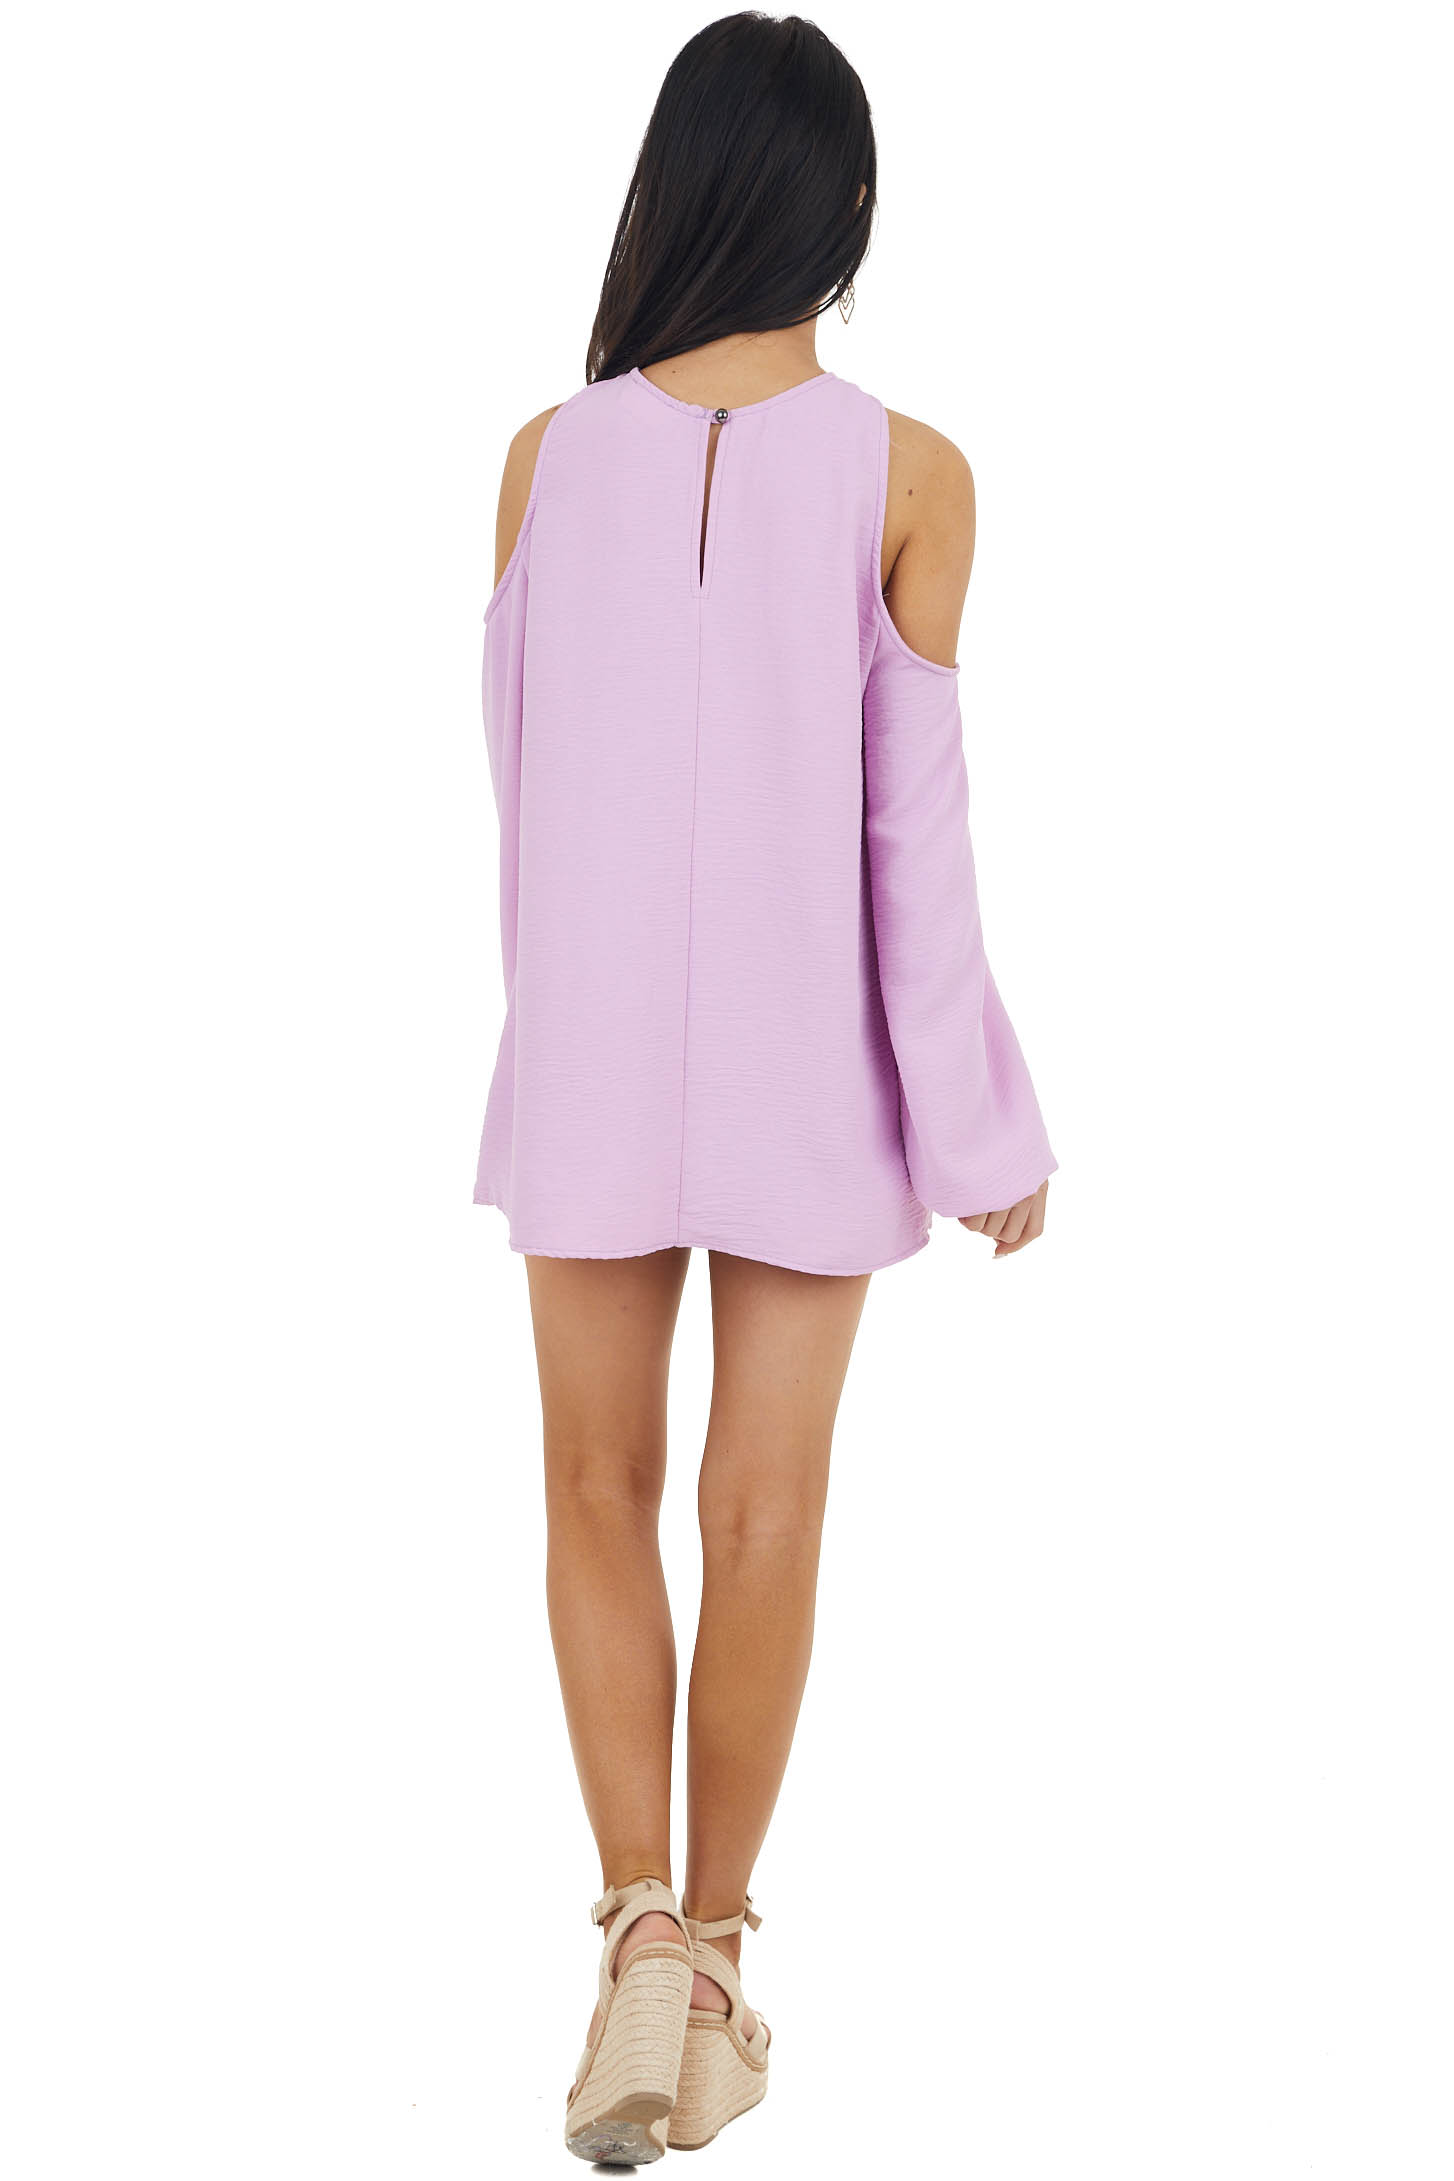 Iris Purple Cold Shoulder Long Sleeve Top with Crossed Neck